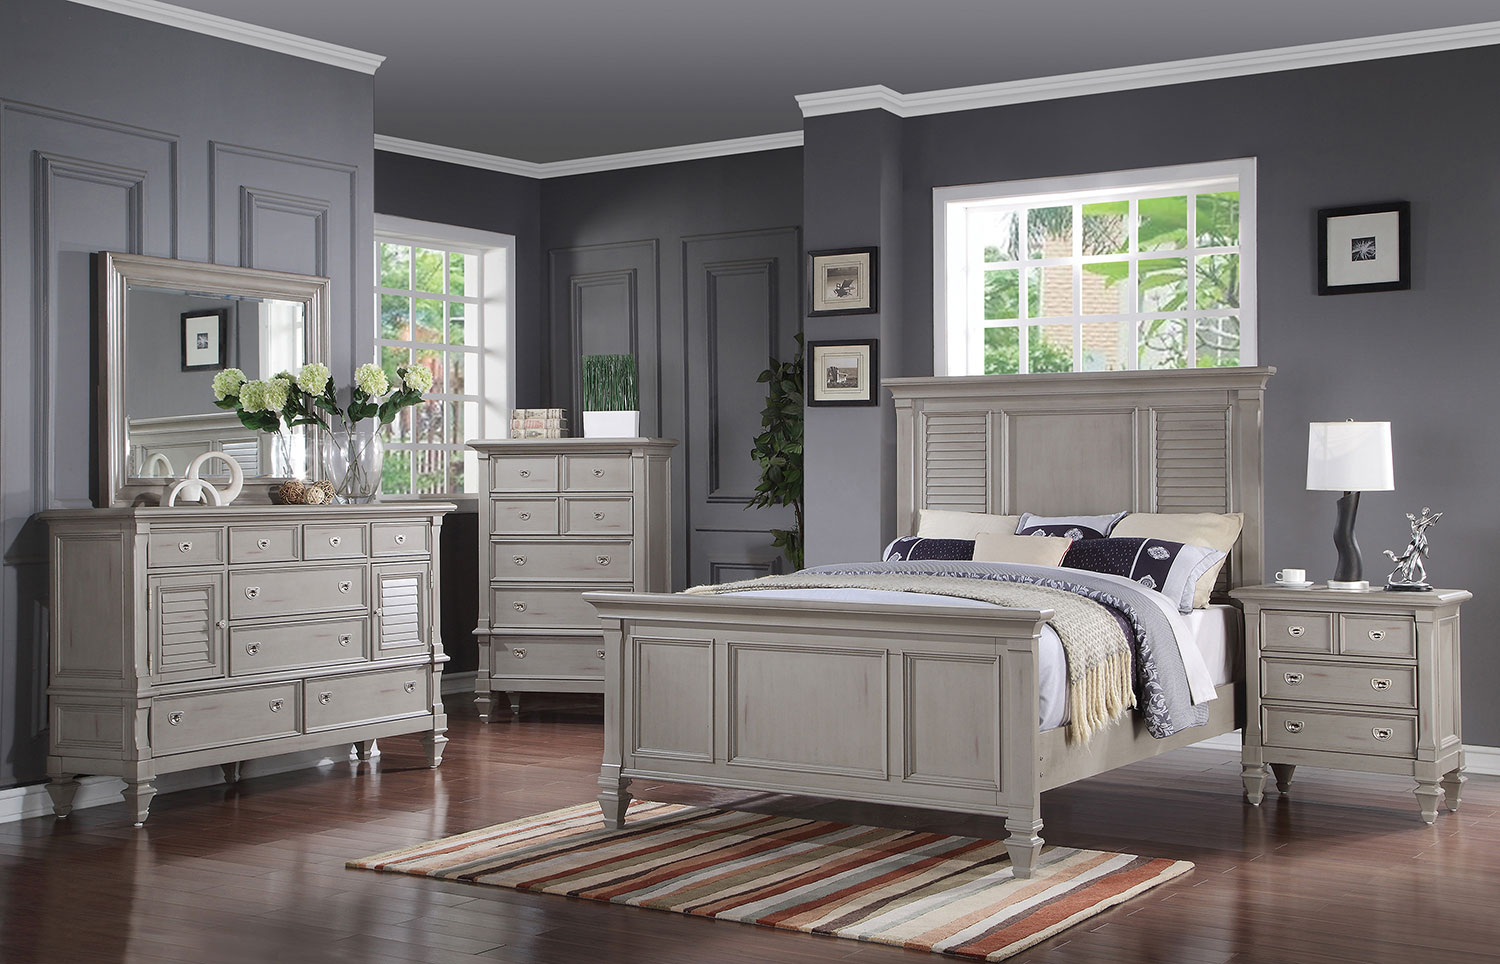 Brimley 4 piece queen bedroom set grey levin furniture Gray bedroom furniture